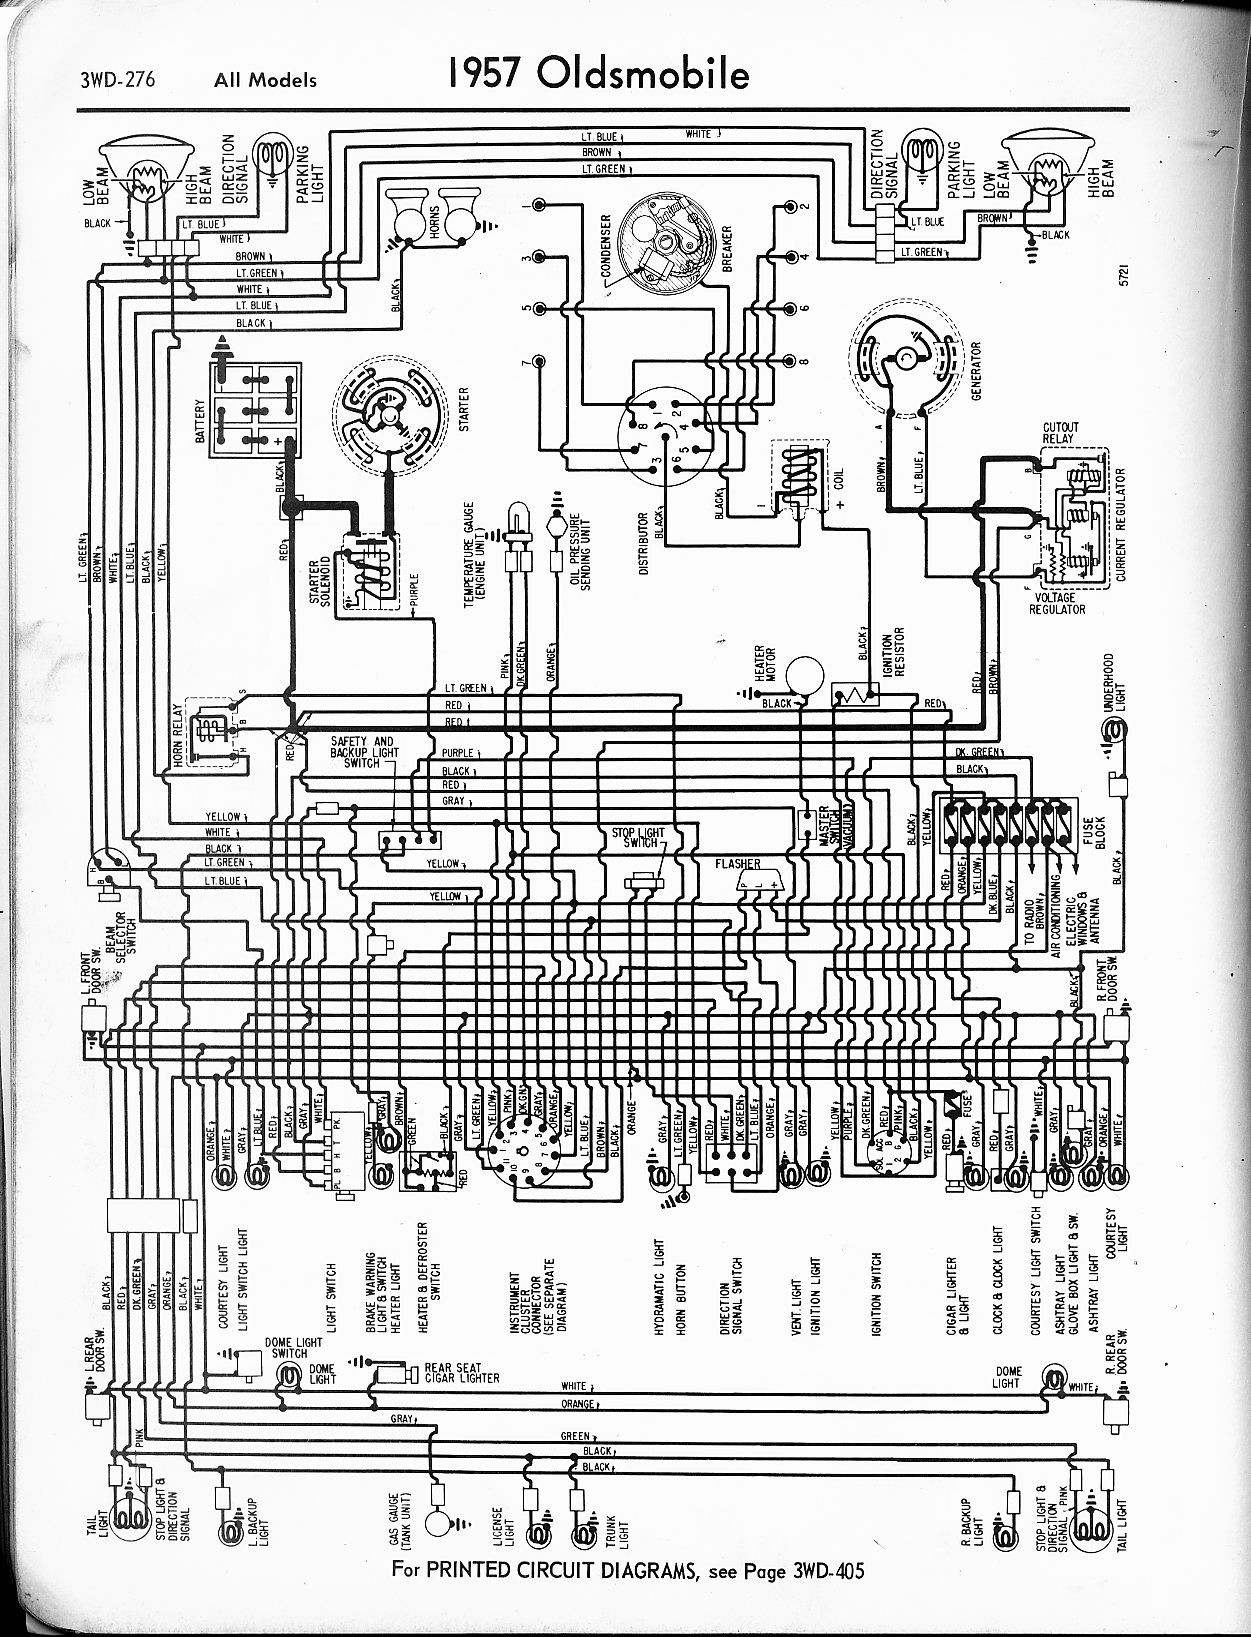 Wrire Schematic for A 1989 Ezgo Textron Model Xi875 1e2a Vw Wiper Switch Wiring Diagram 1965 Of Wrire Schematic for A 1989 Ezgo Textron Model Xi875